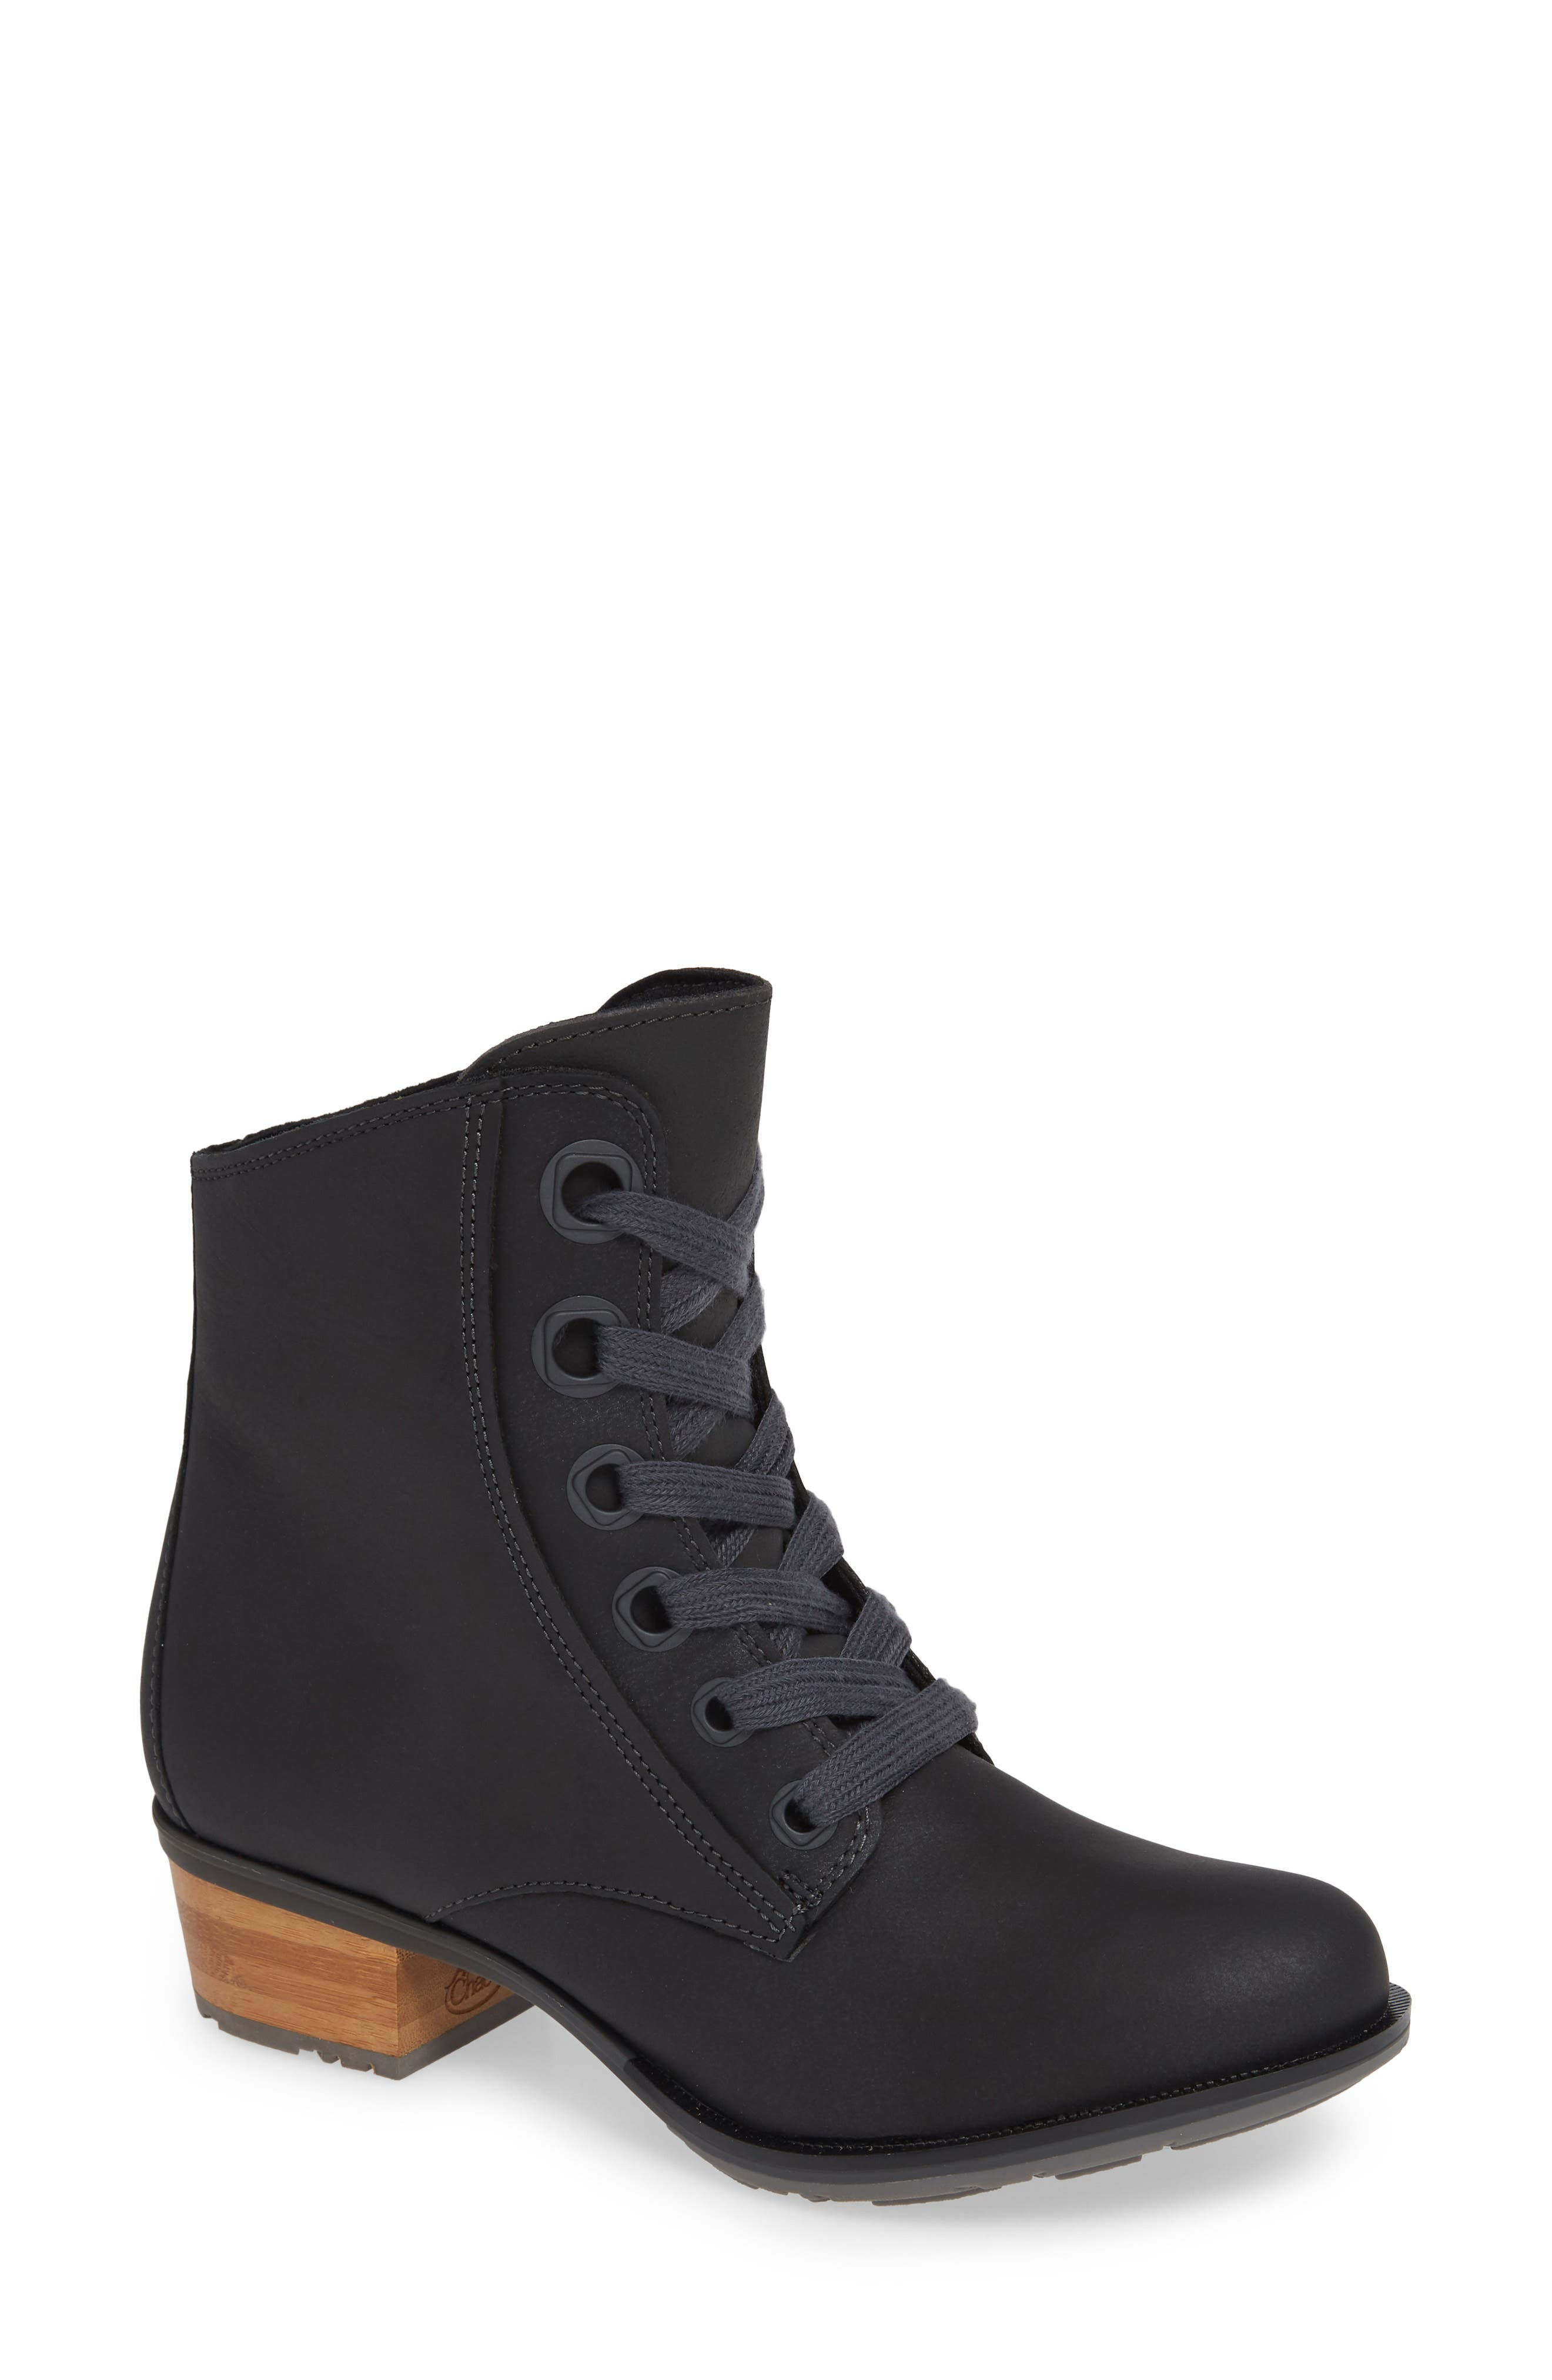 Chaco Cataluna Waterproof Lace-Up Boot, Black